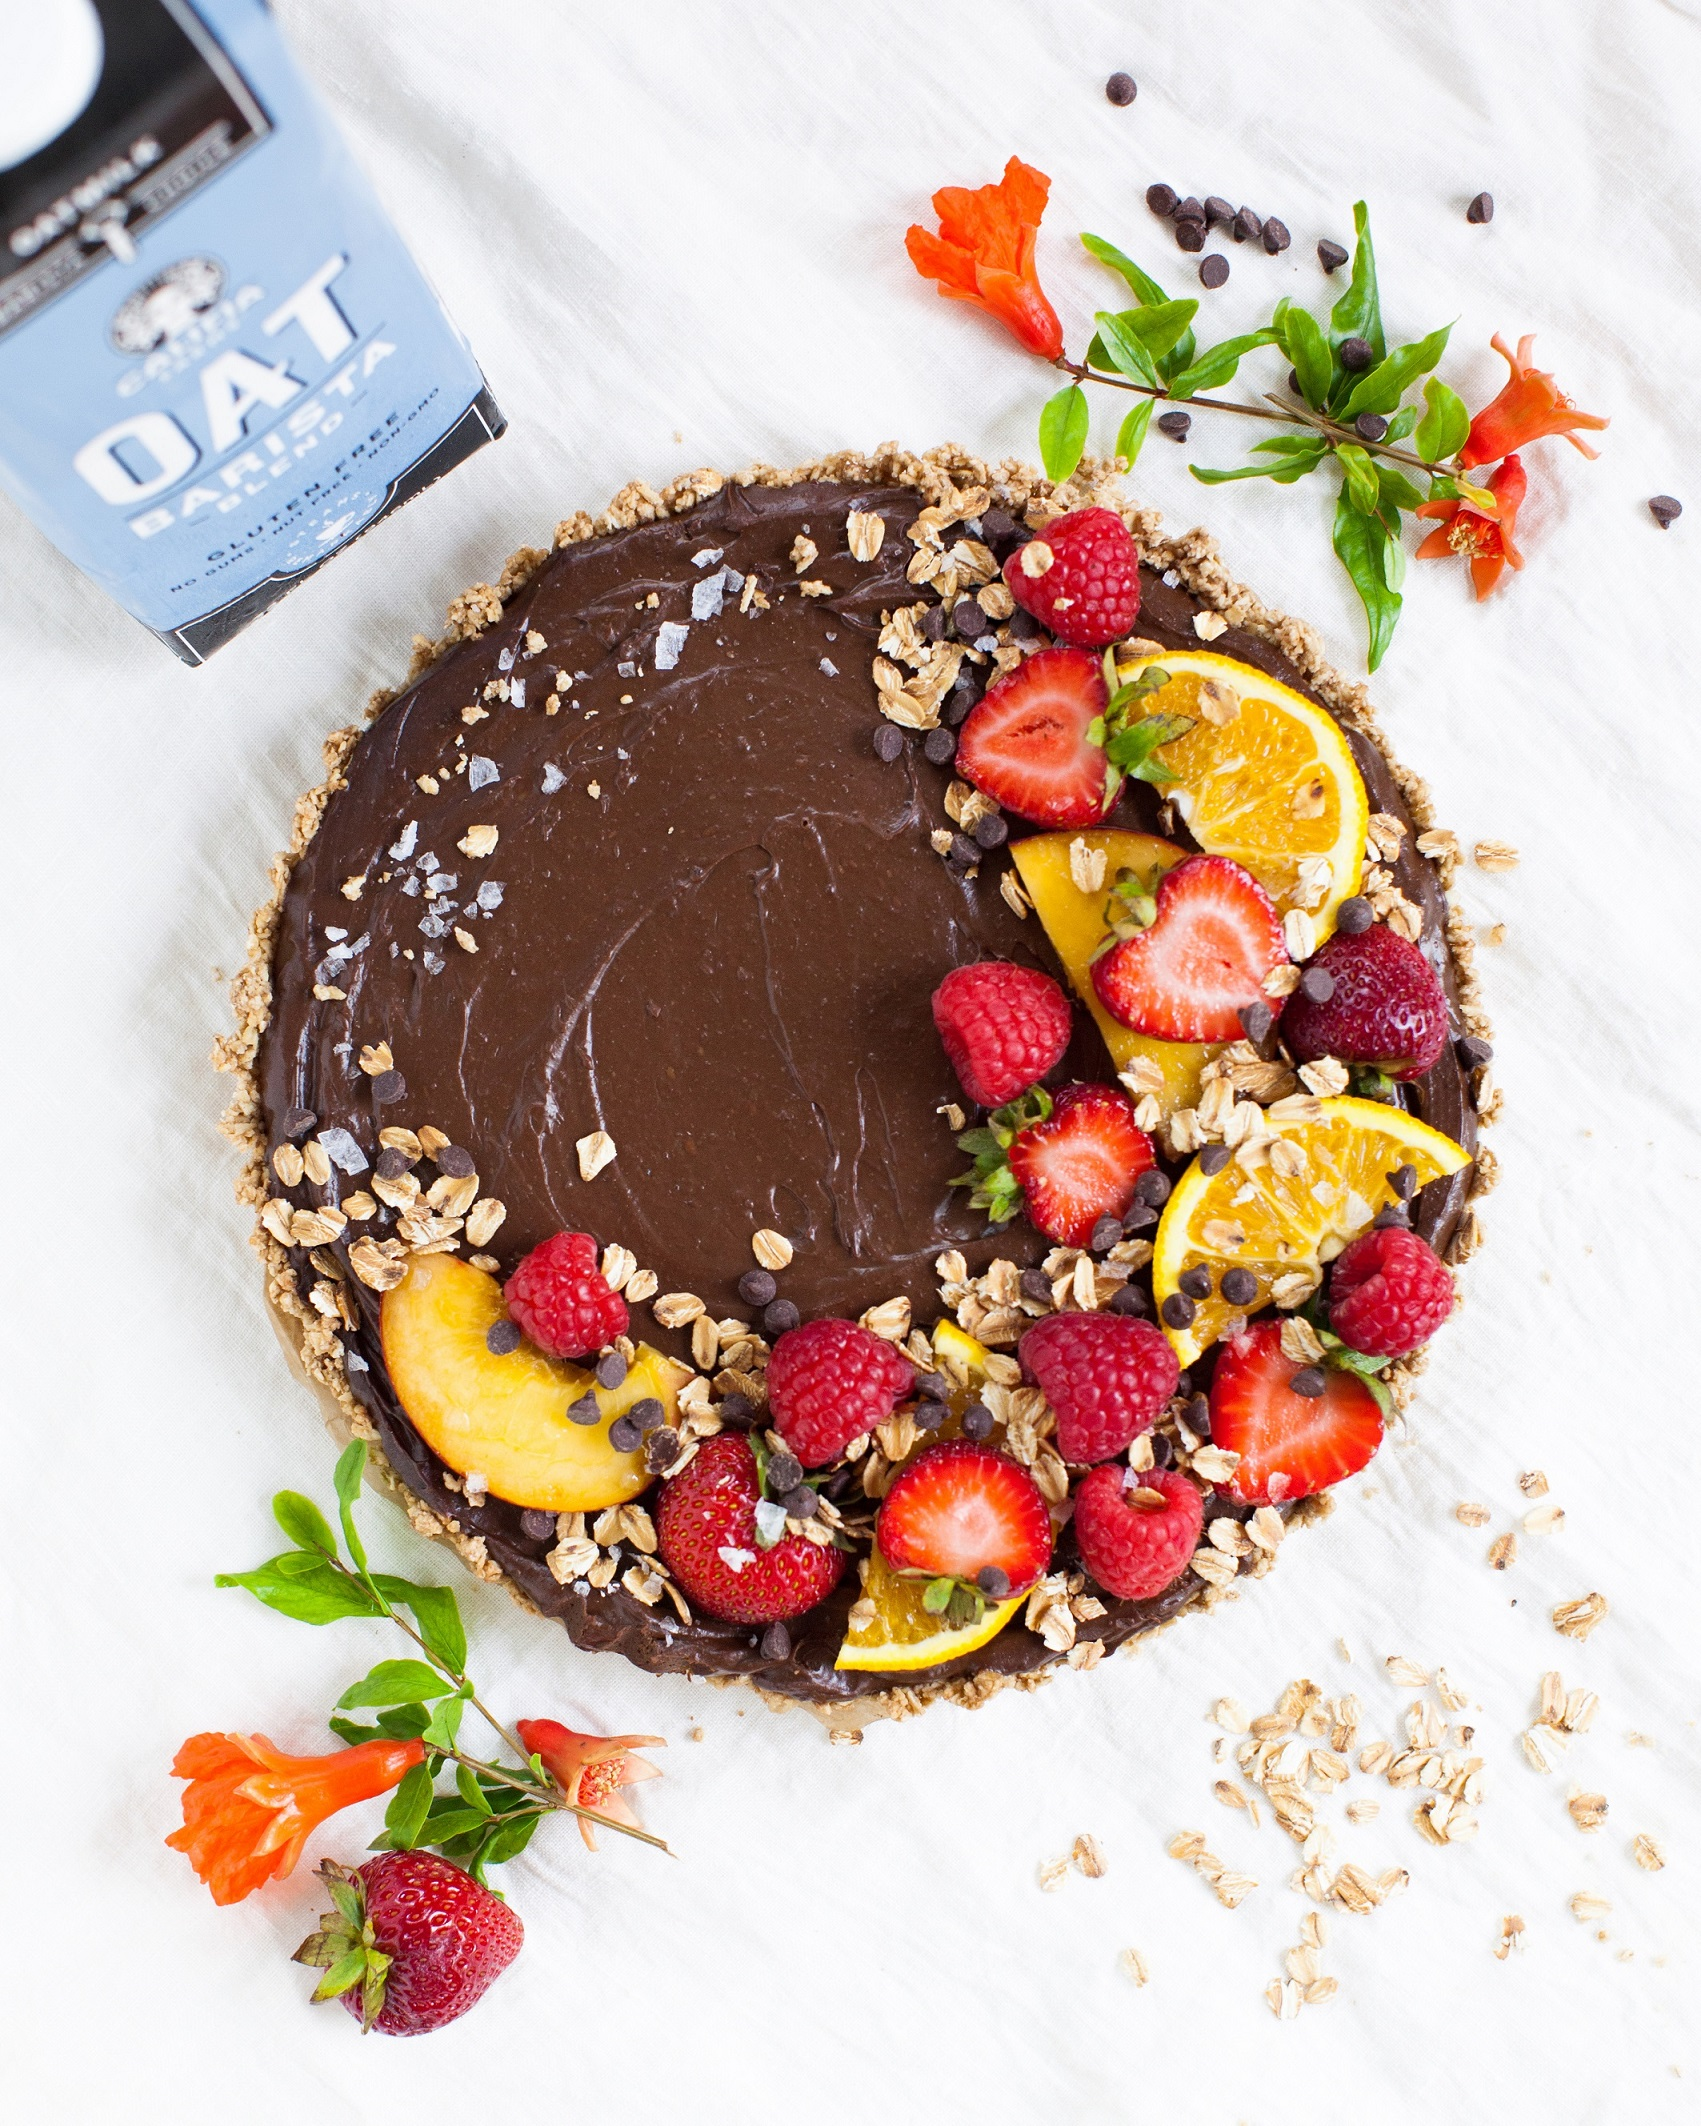 Plant-Based Oat Milk Chocolate Mousse Tart - perfetc for World Chocolate Day